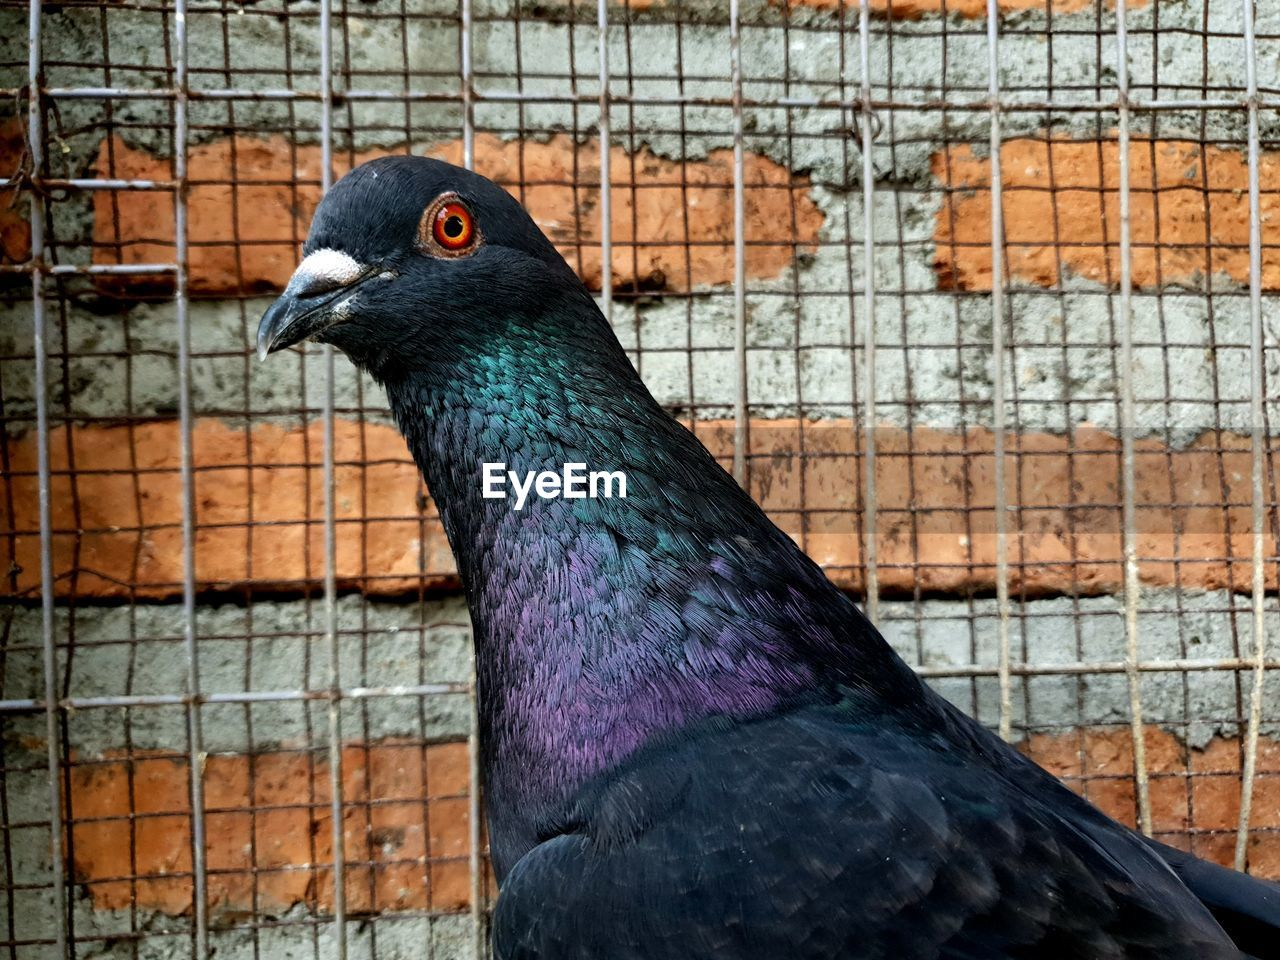 animal themes, animal, bird, one animal, vertebrate, animal wildlife, animals in the wild, close-up, no people, day, focus on foreground, pigeon, brick, wall, animals in captivity, wall - building feature, side view, brick wall, cage, looking, animal head, profile view